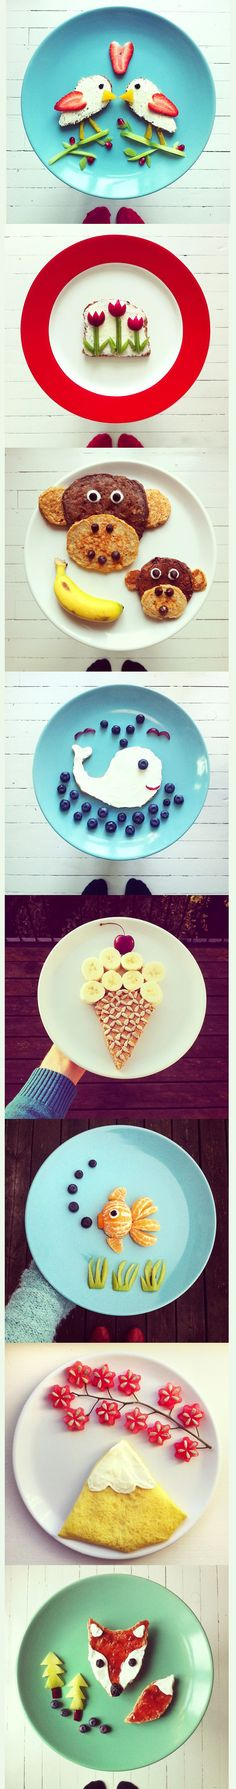 Cheerful Food Art